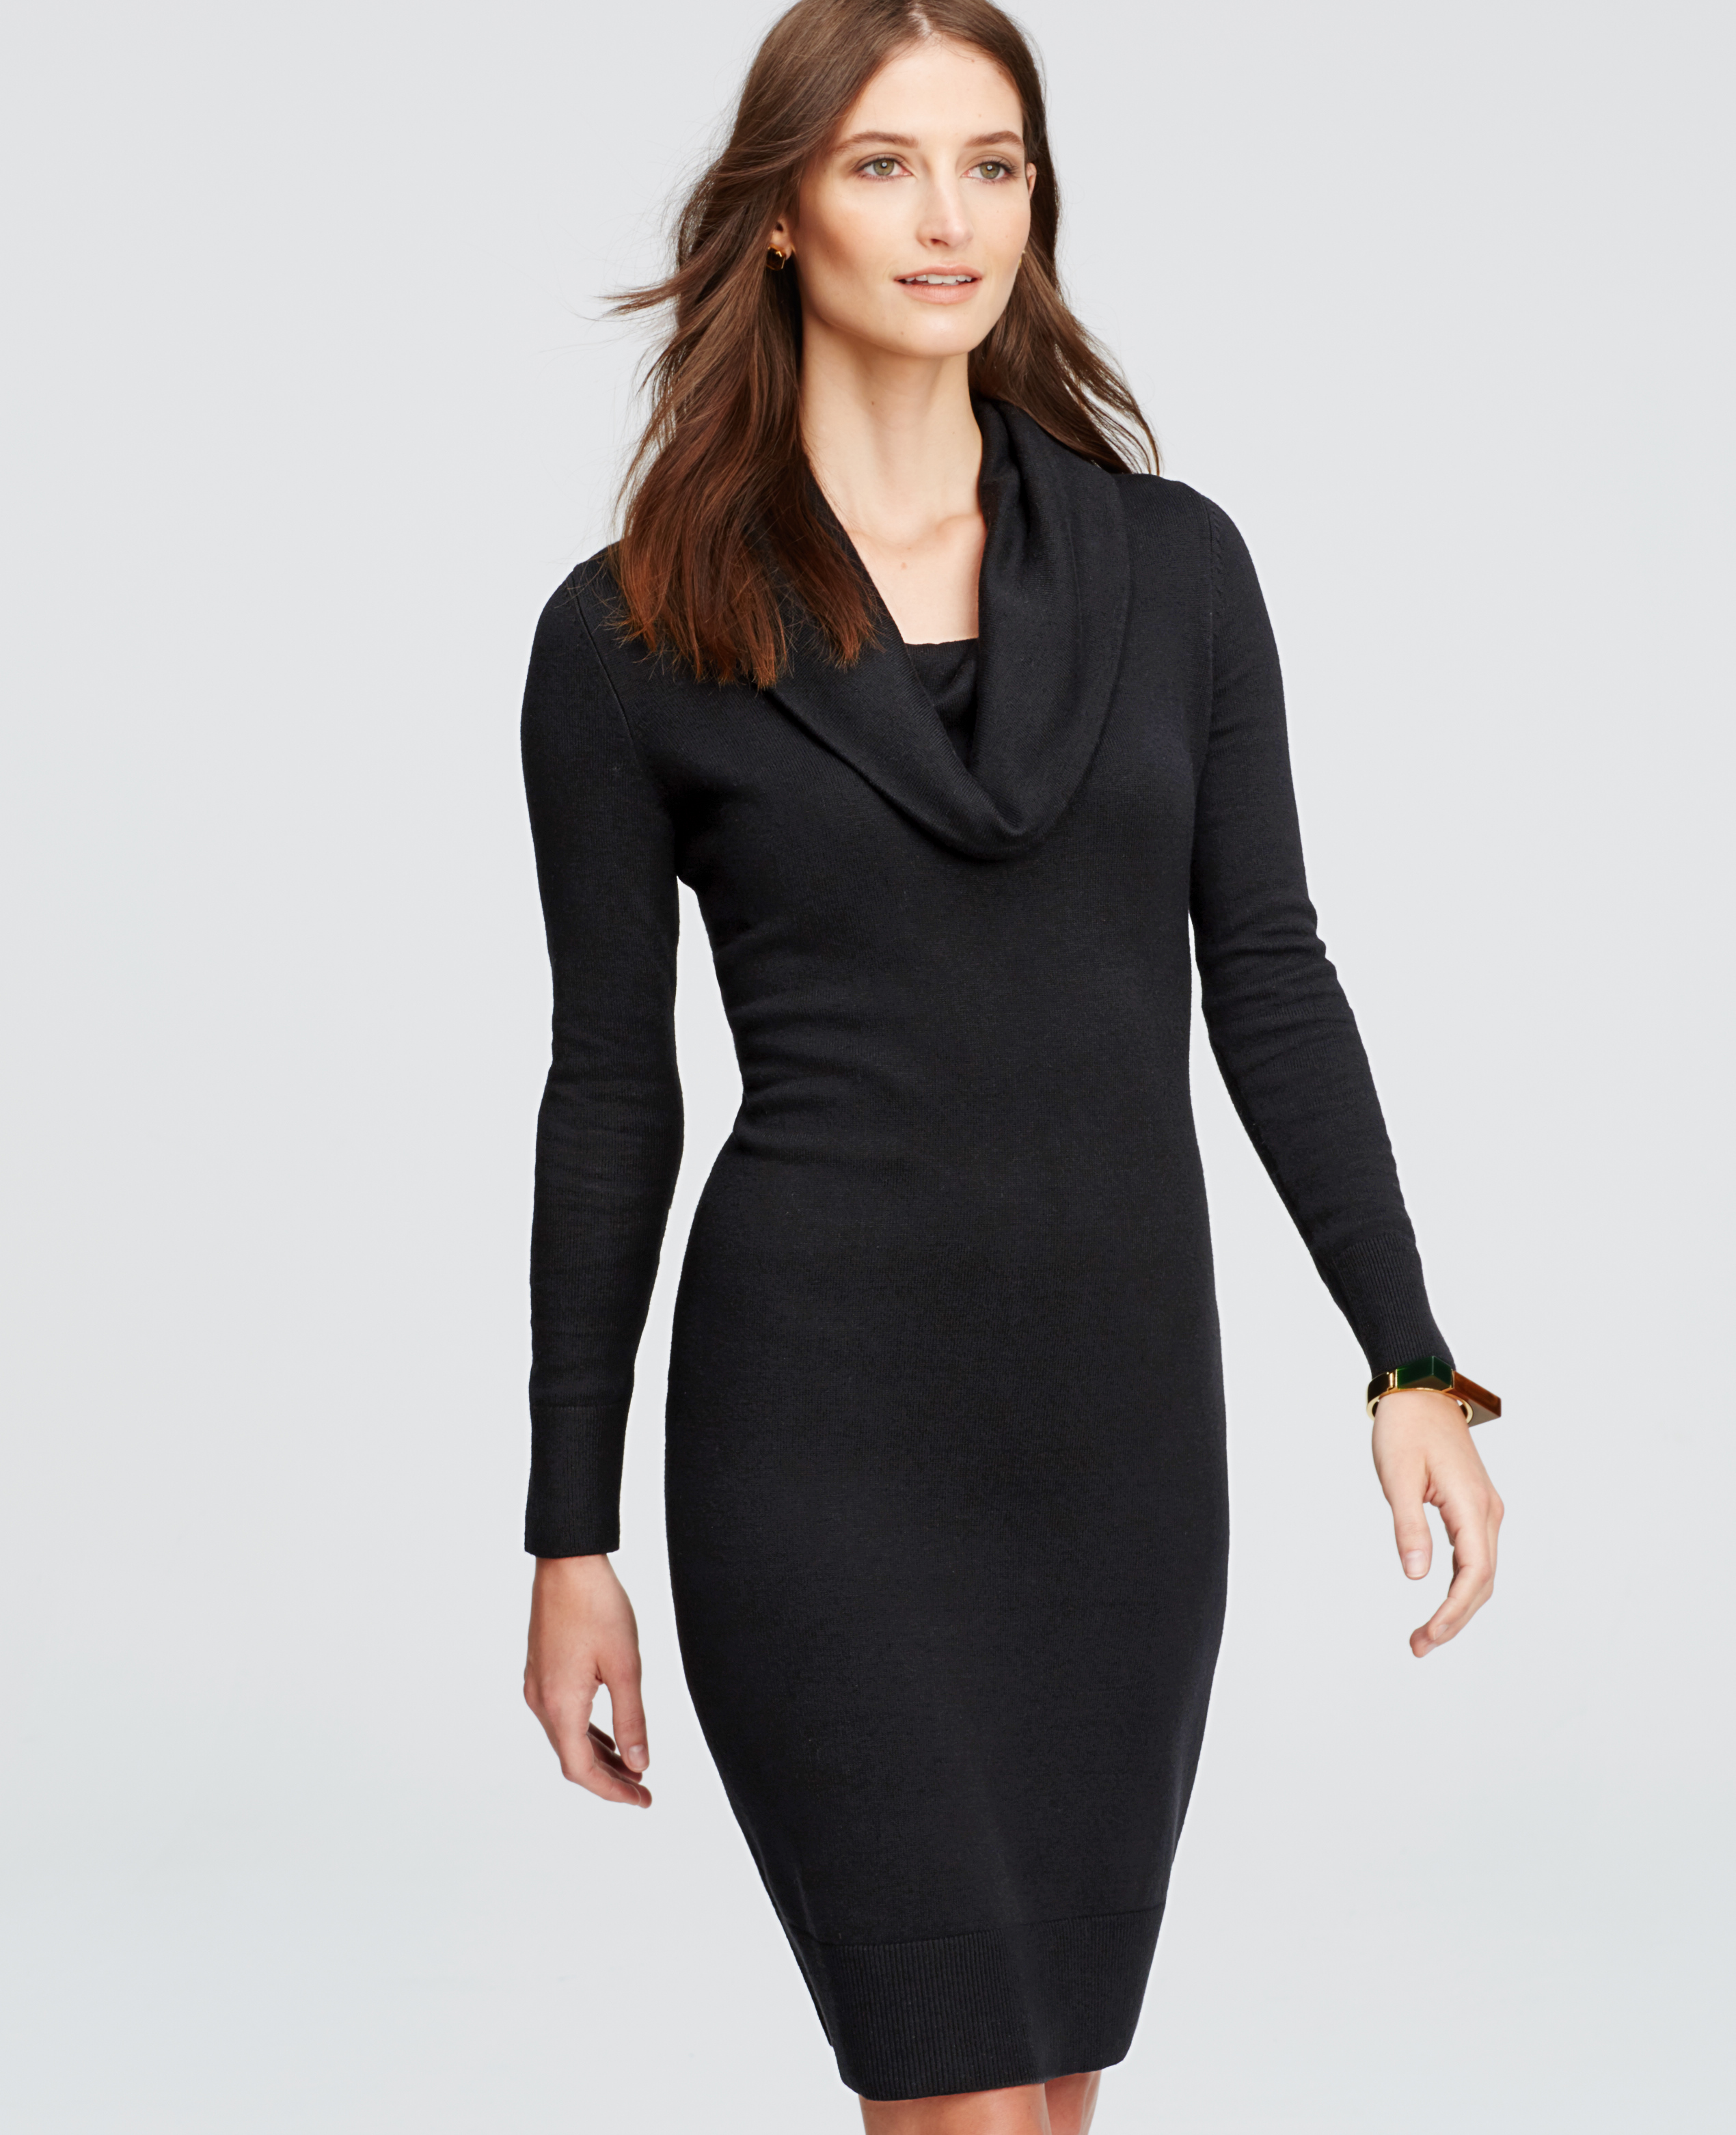 Ann taylor Tall Cowl Neck Sweater Dress in Black | Lyst